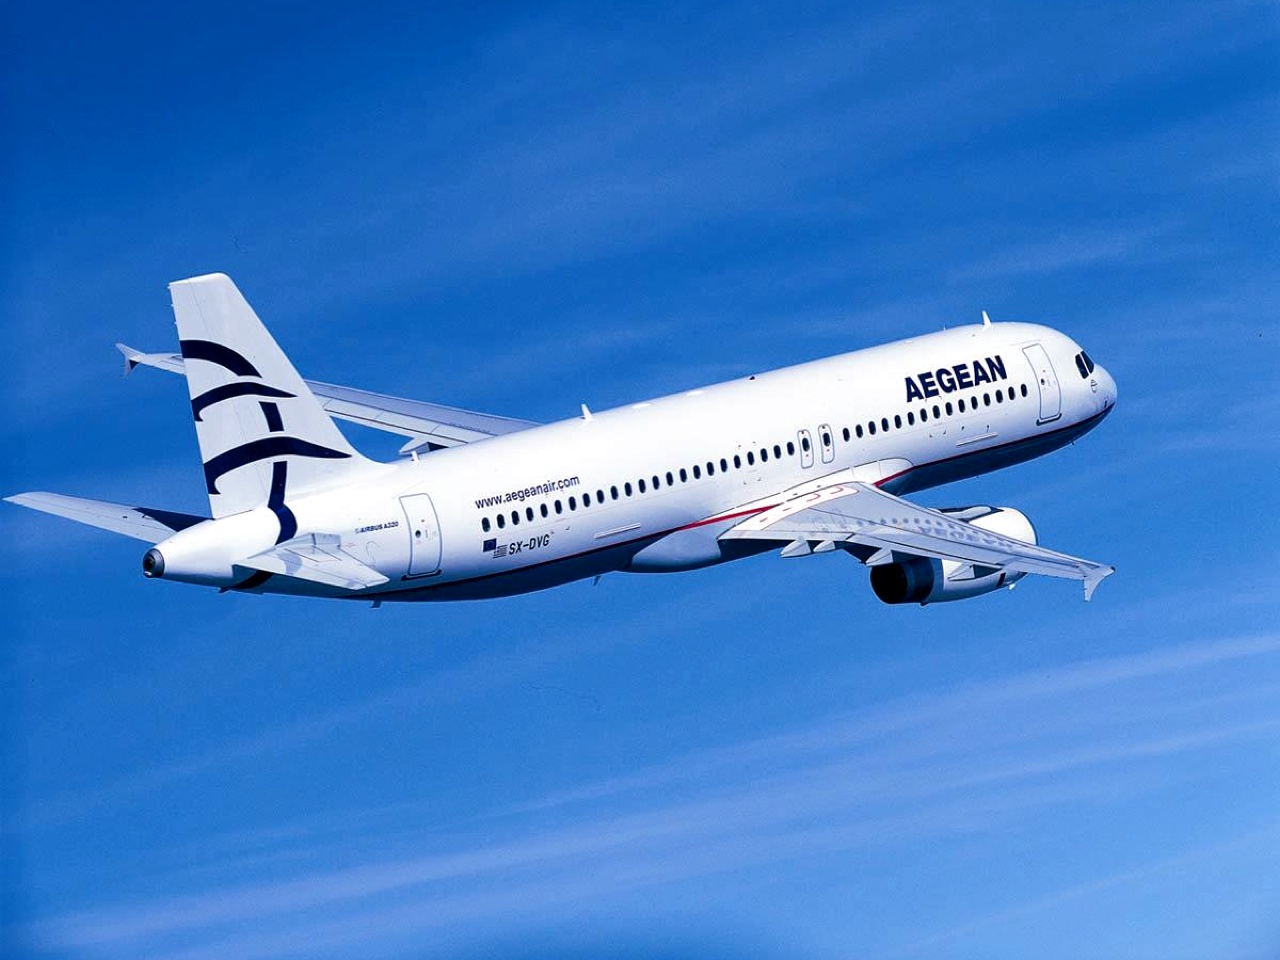 AEGEAN - New Destinations and 700,000 Additional Seats in 2019